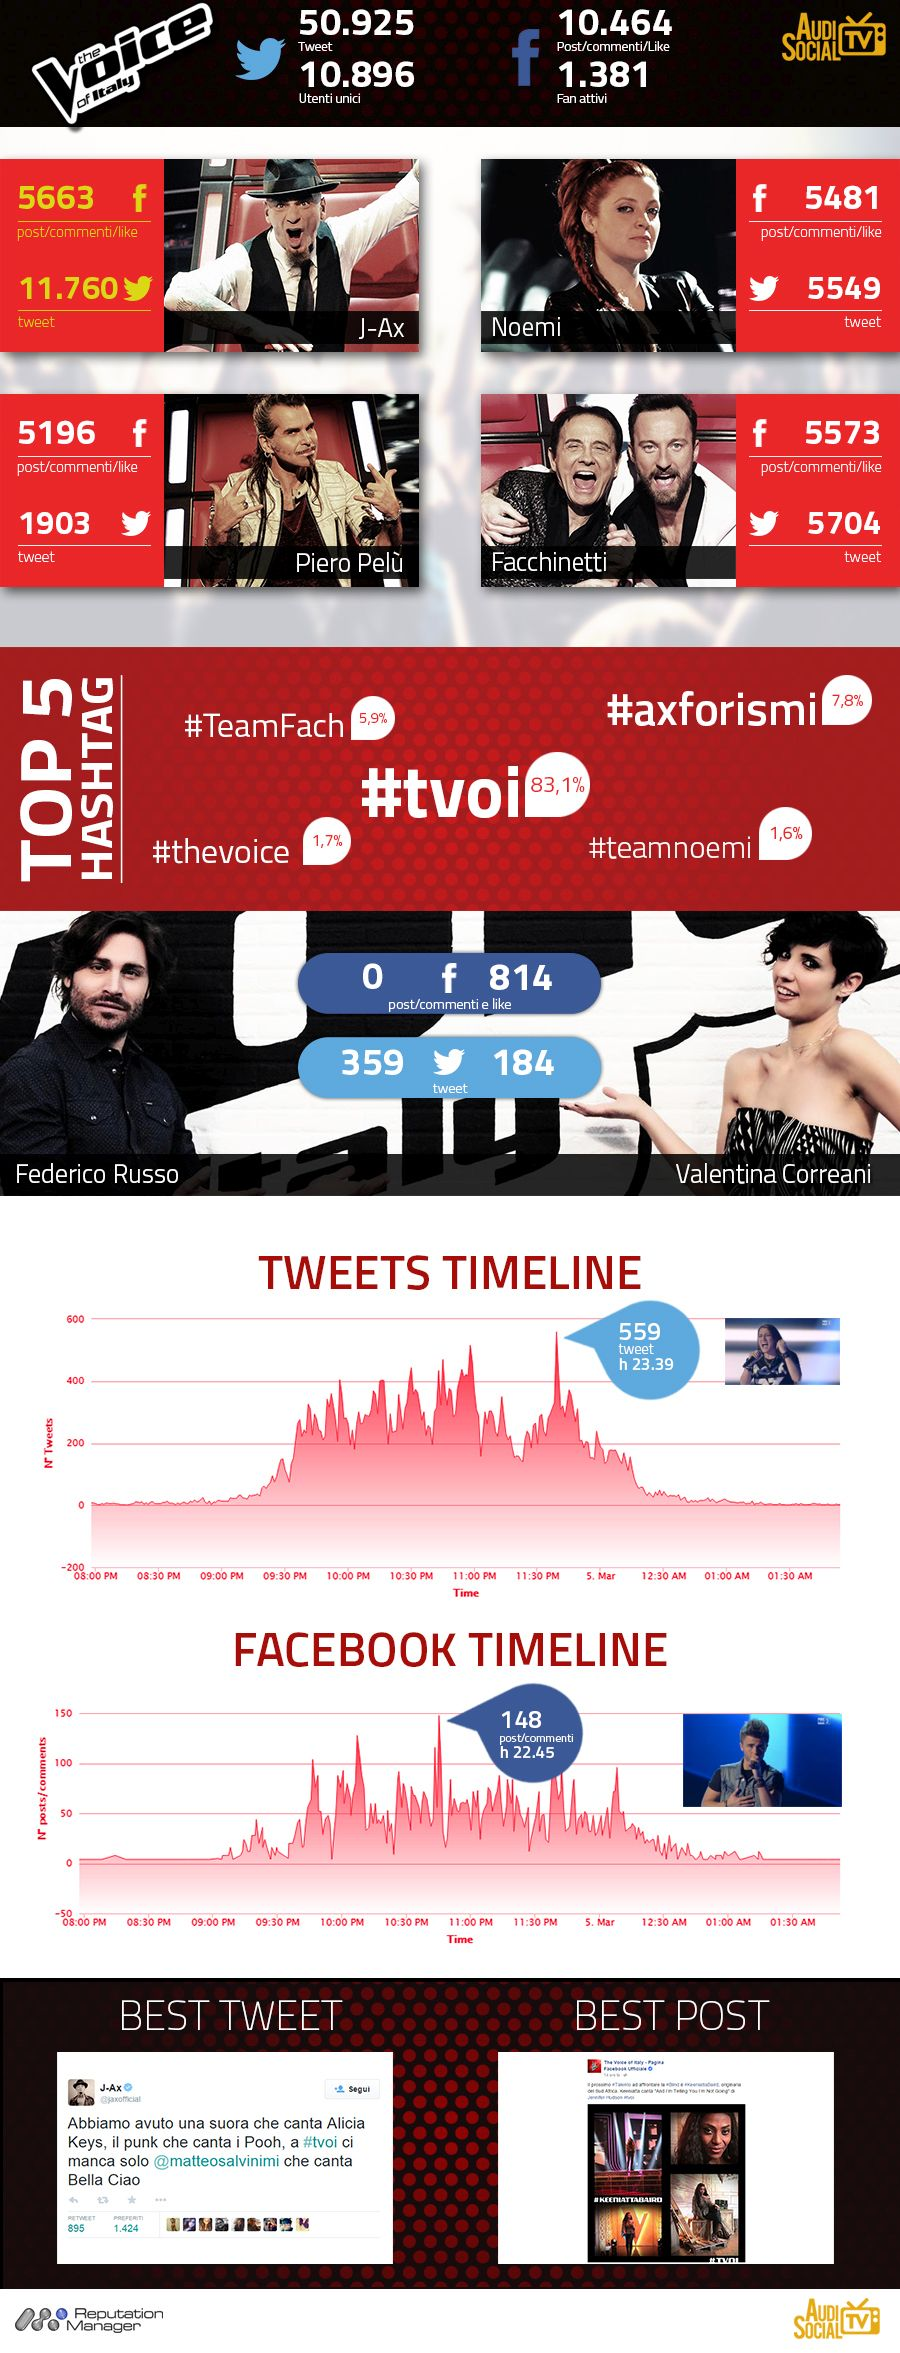 InfograficaTheVoice-3Mar2015_AudisocialTV-Reputation-Manager